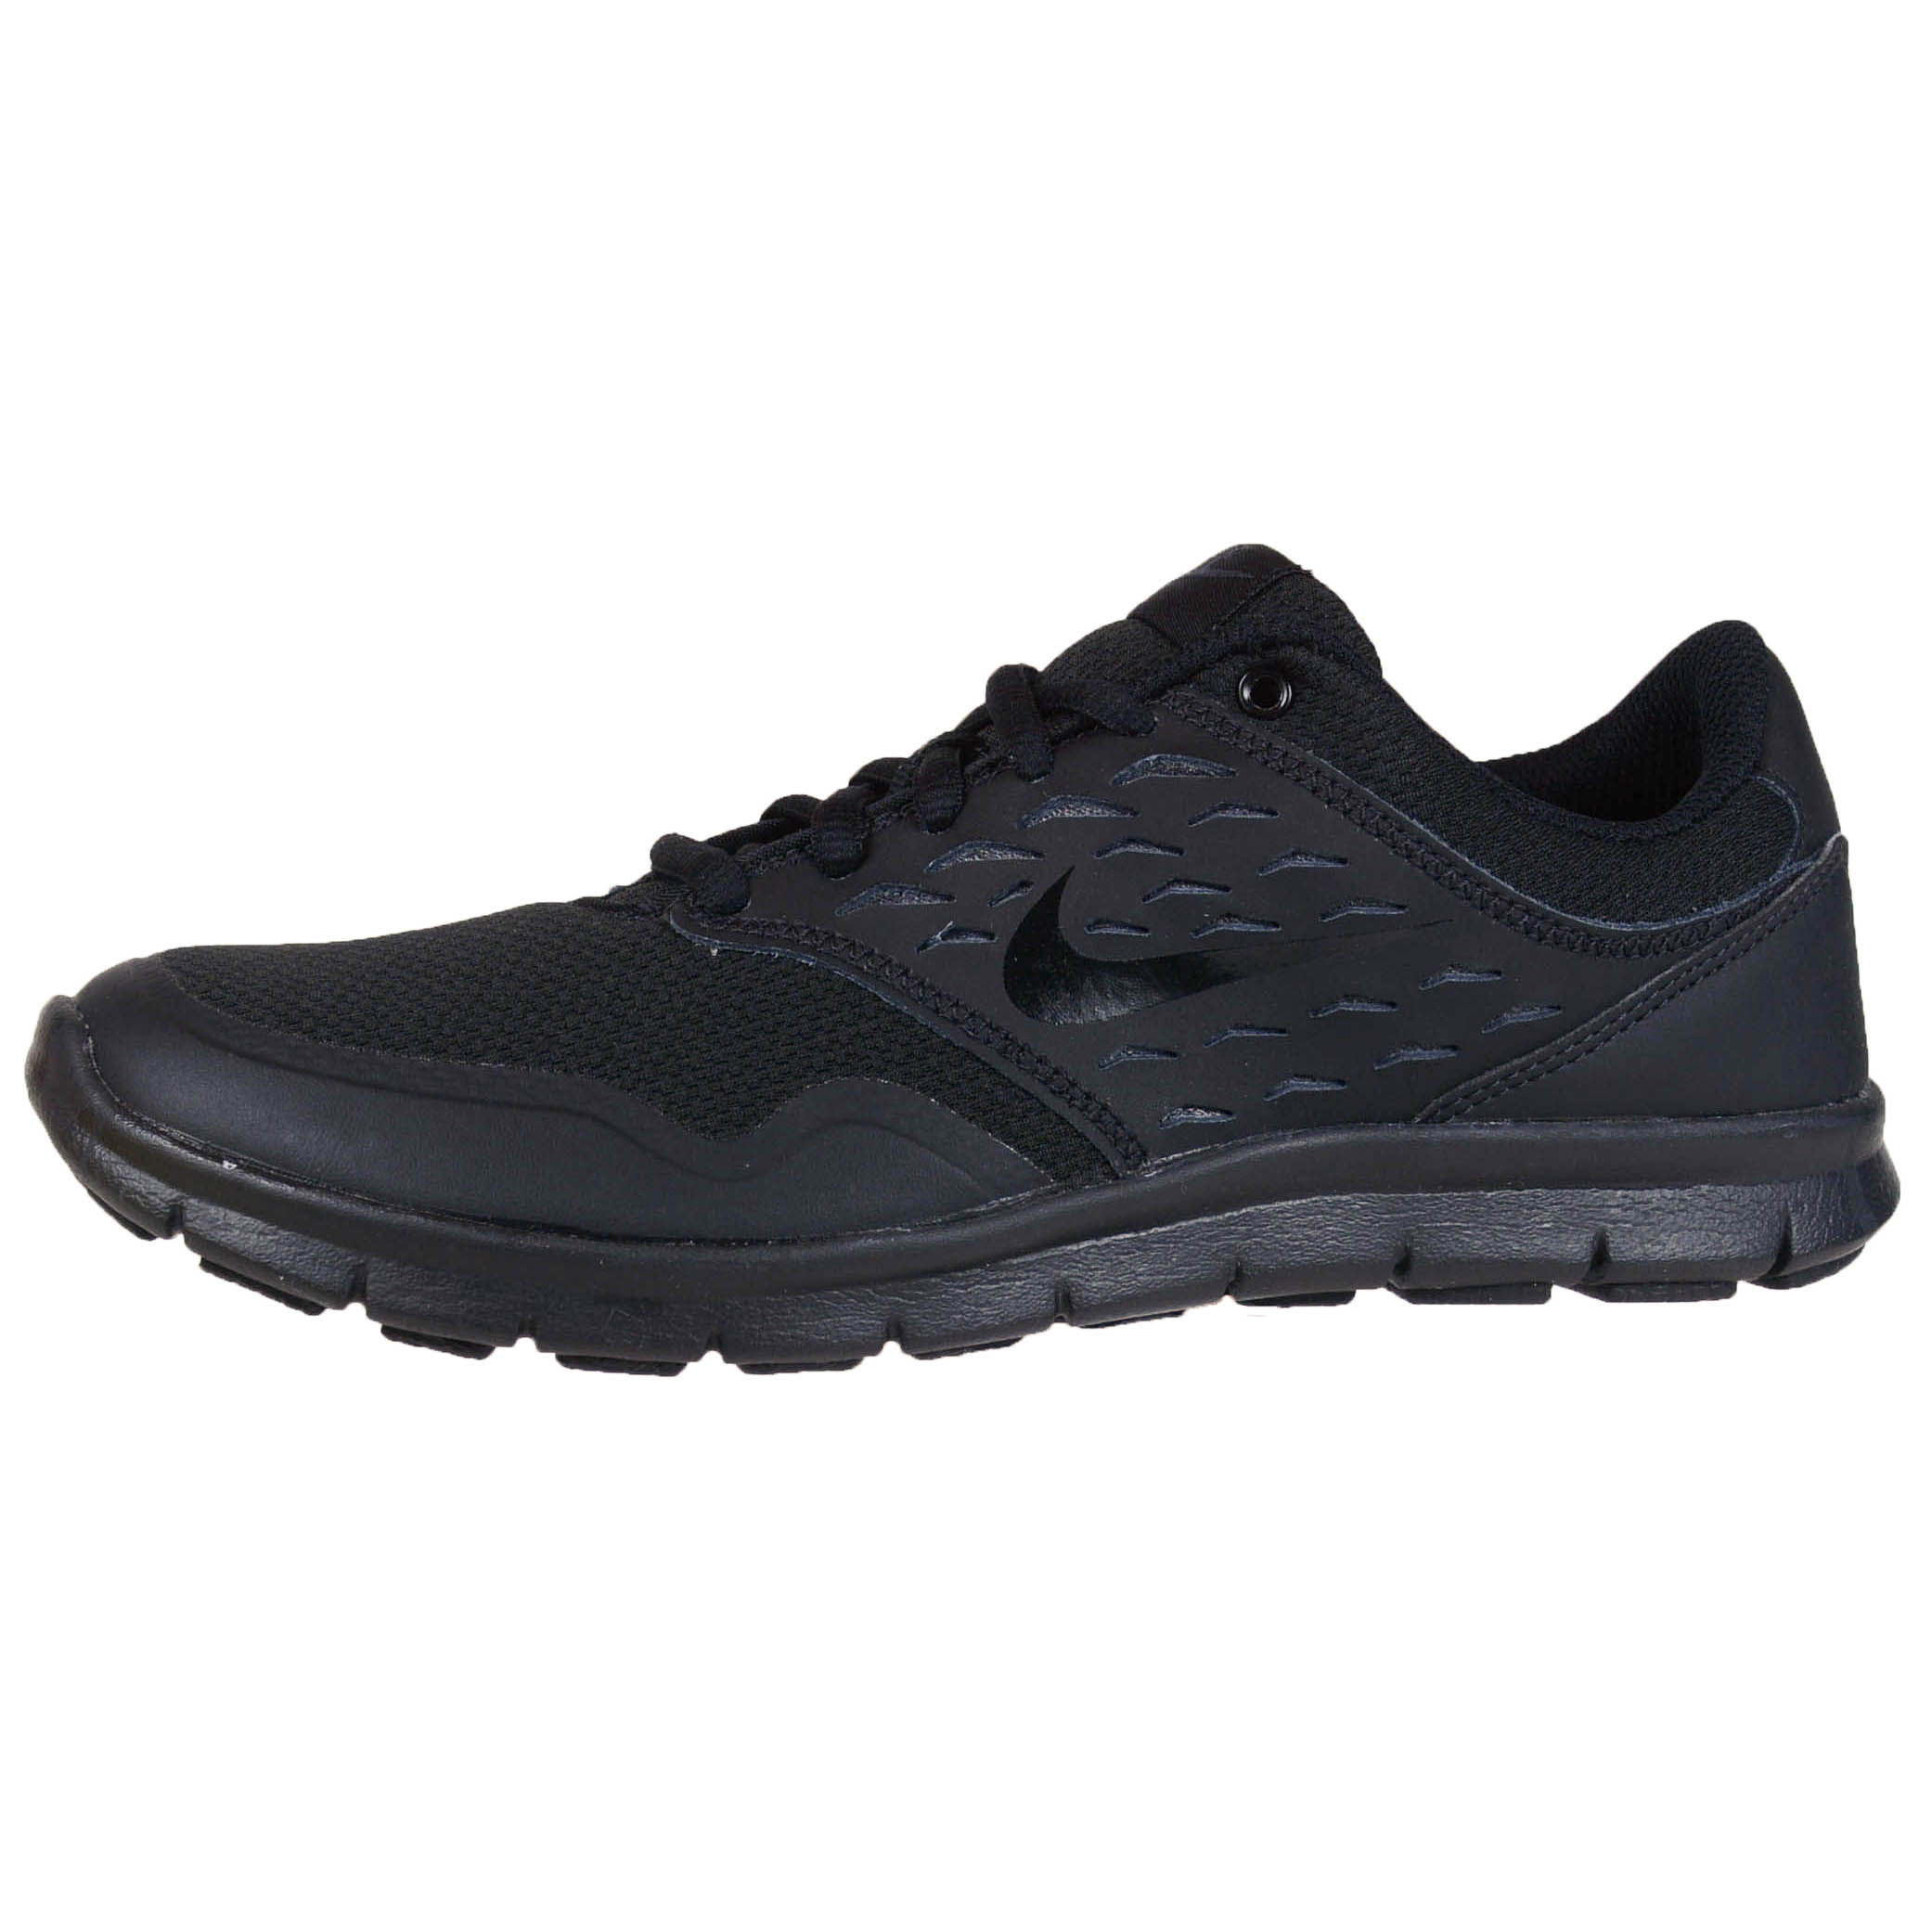 NIKE WOMENS ORIVE NM RUNNING SHOES BLACK BLACK ANTHRACITE 677136 001